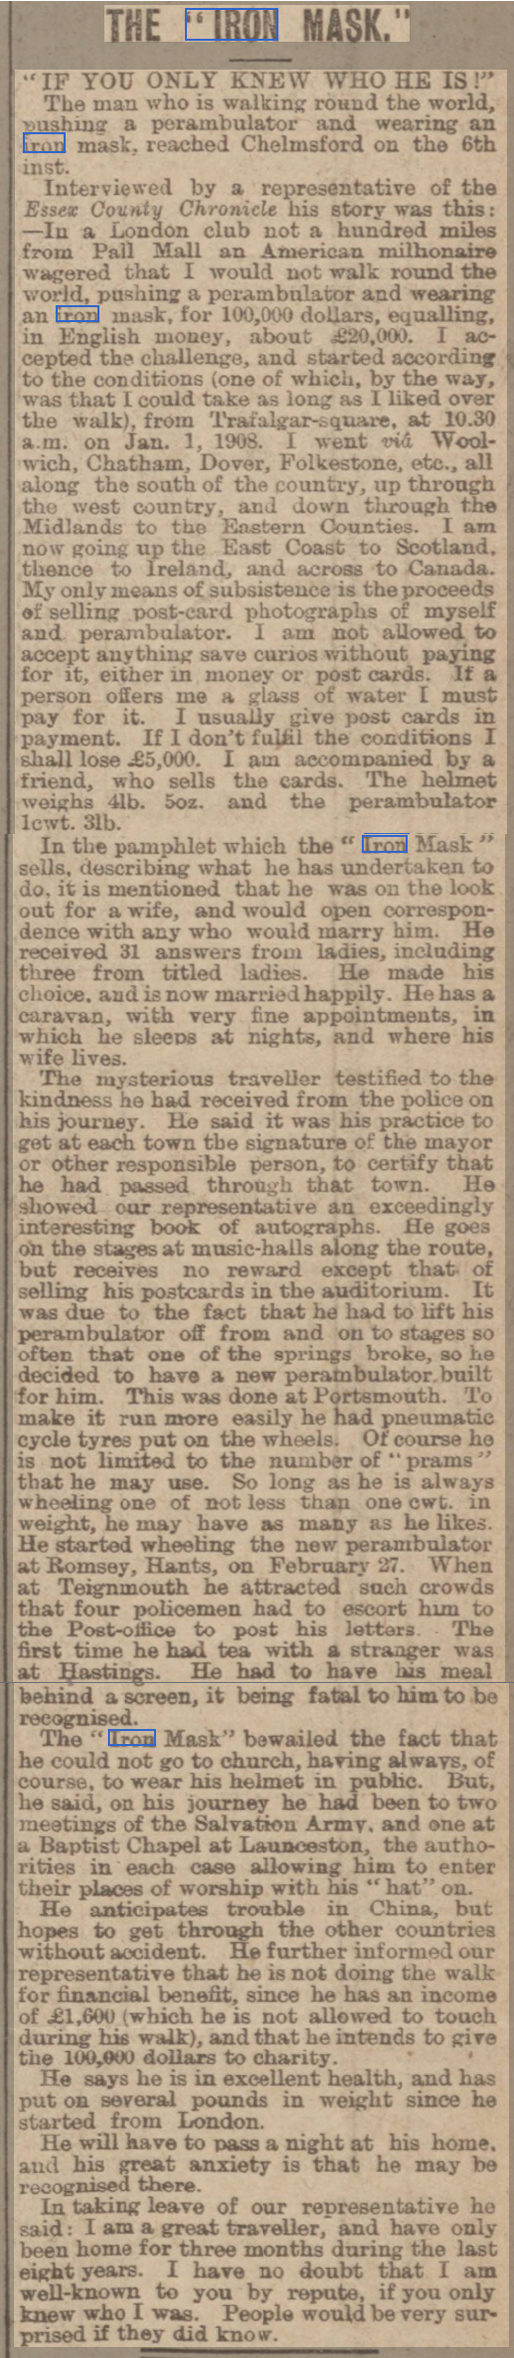 newspaper report about the man who walked round the world in an iron mask